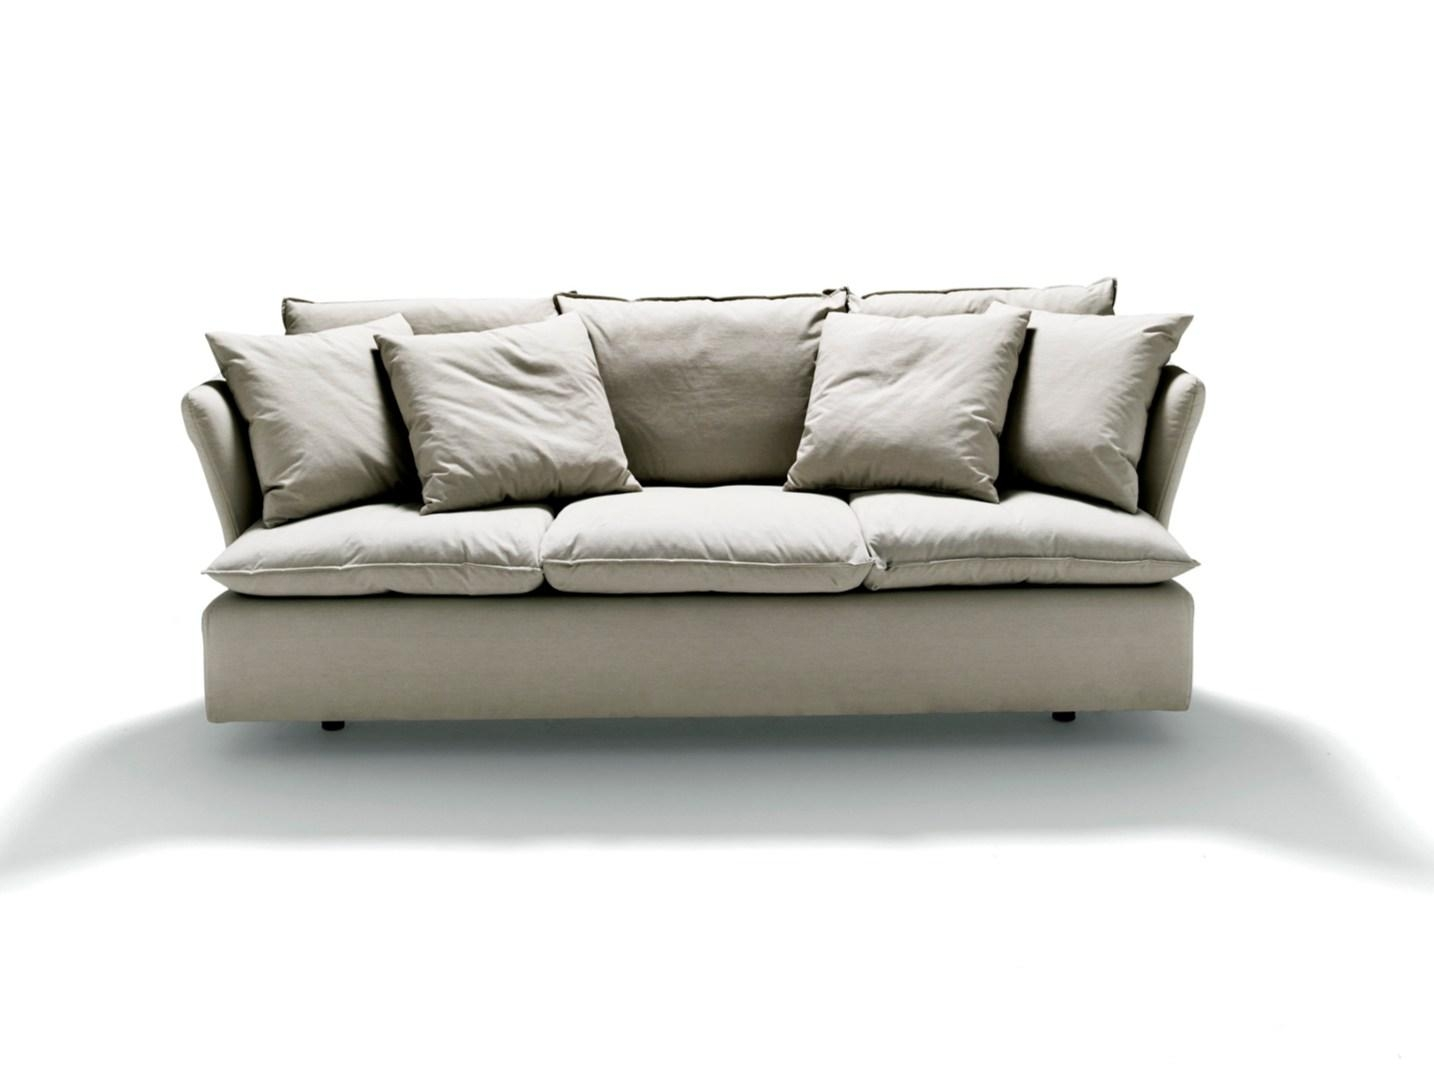 Sofas With Removable Cover | Archiproducts Intended For Sofa With Removable Cover (View 12 of 20)